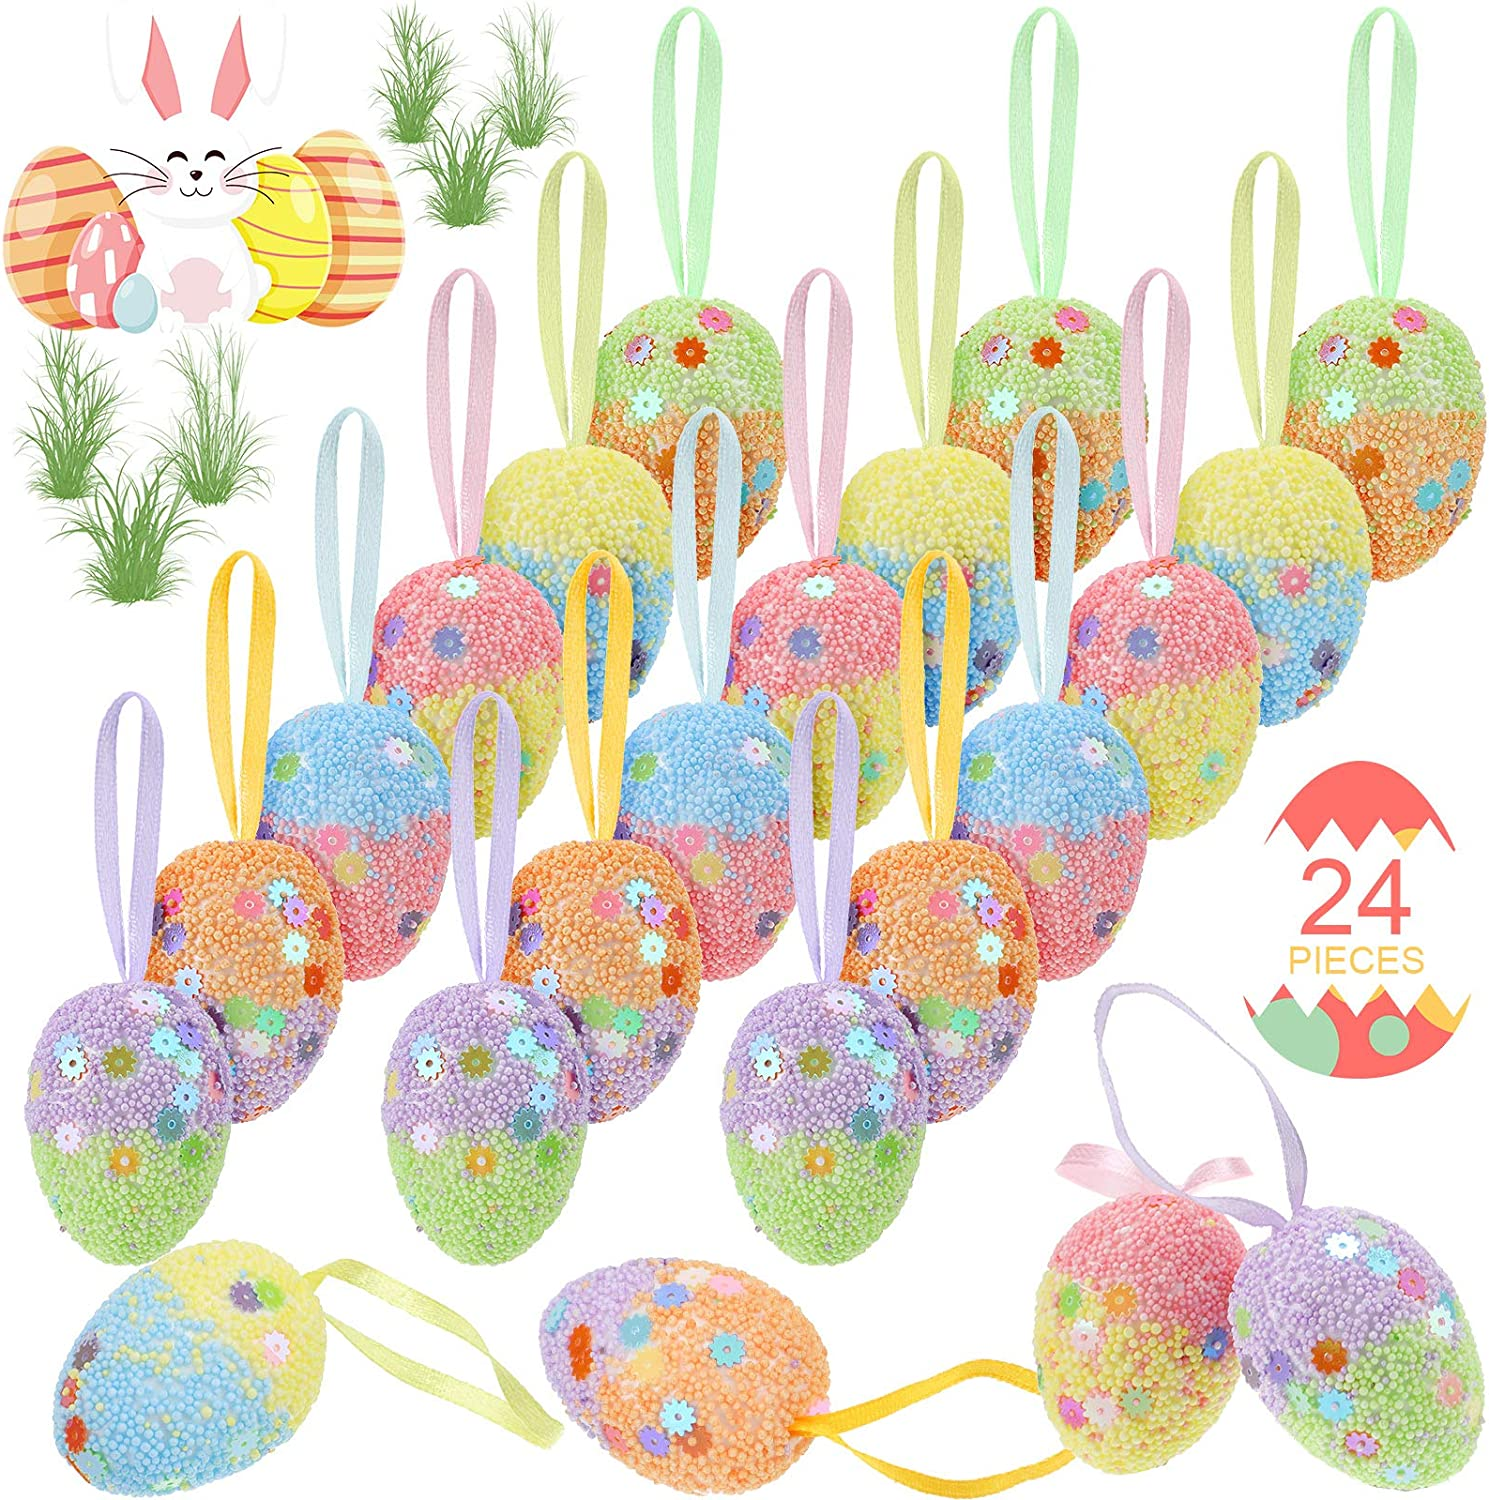 Skylety 24 Pieces Colorful Foam Easter Hanging Egg Ornaments Painted Hanging Easter Decorations